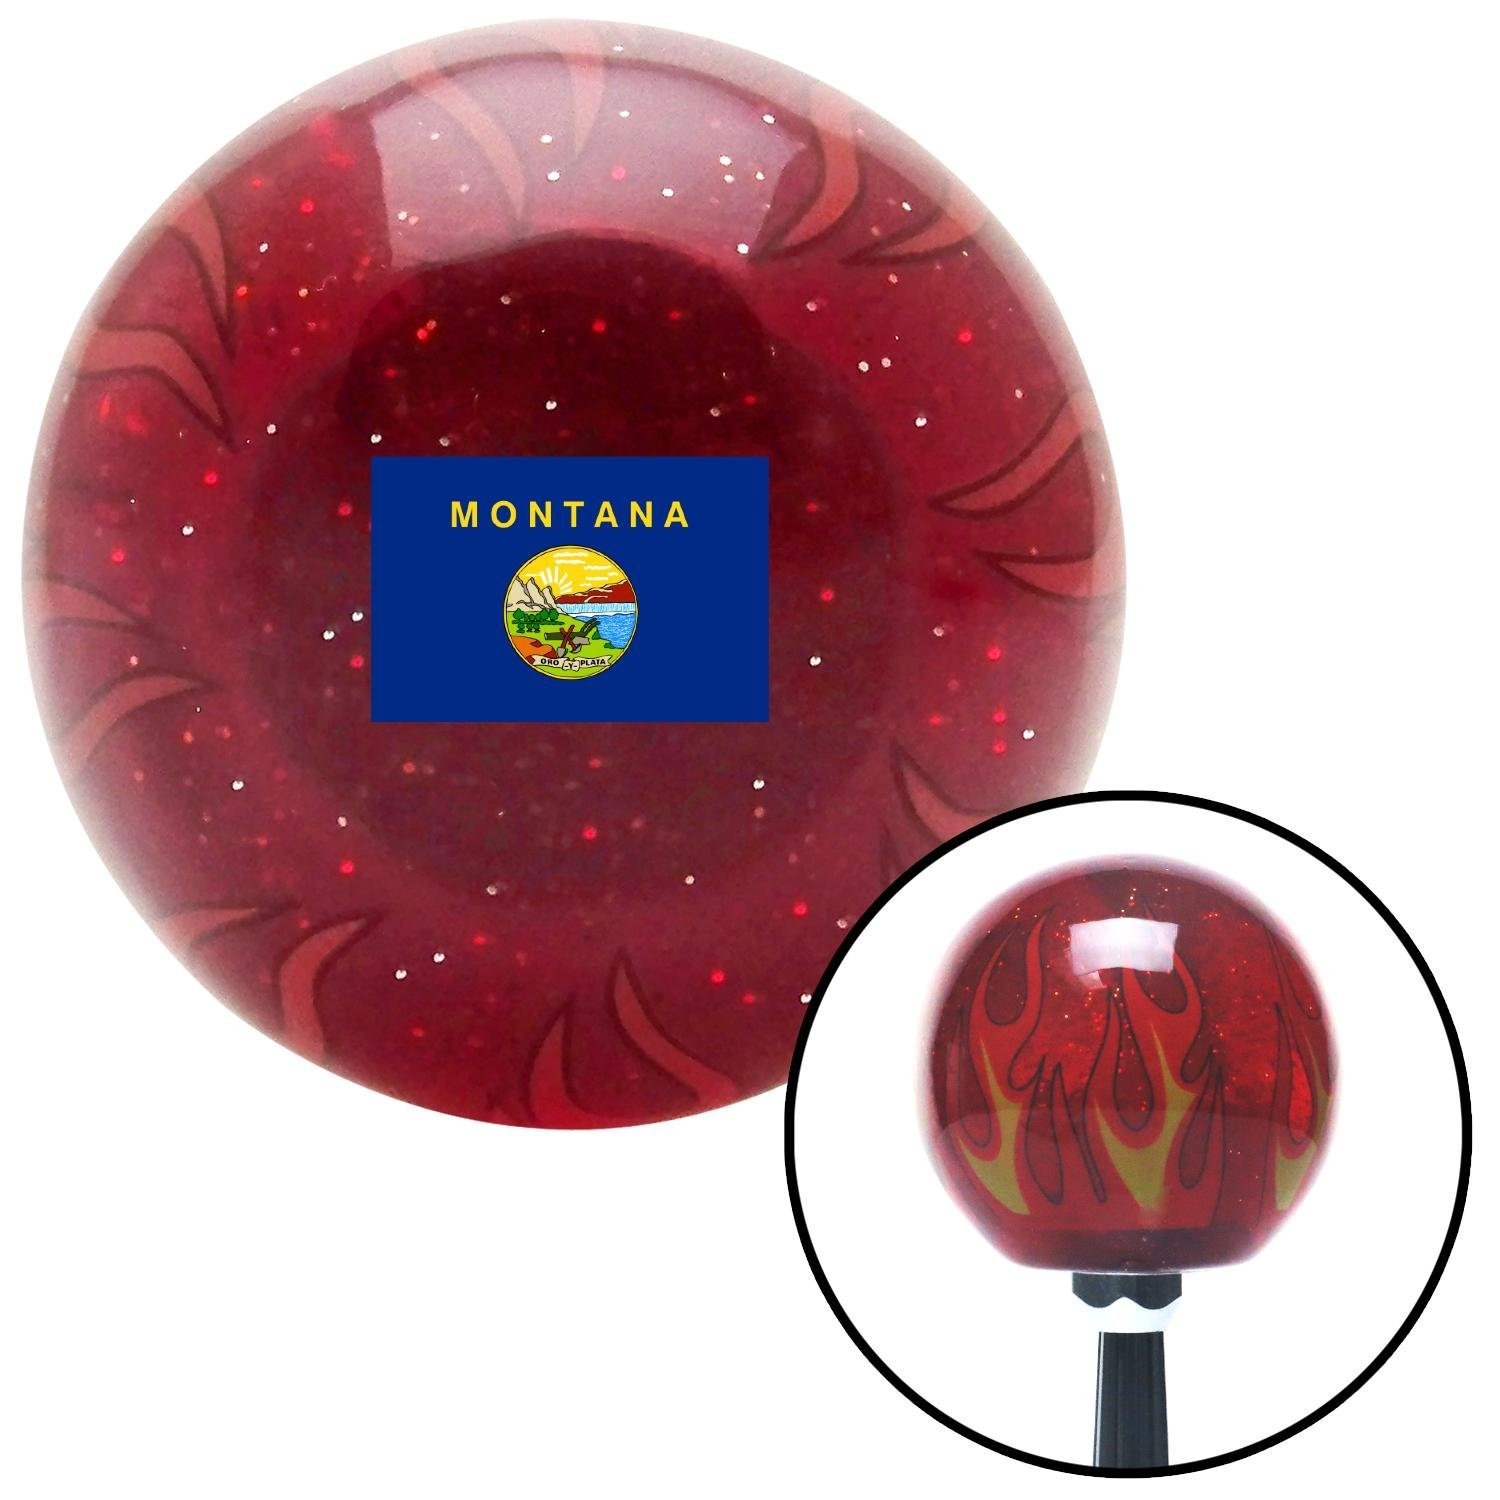 American Shifter 310024 Shift Knob Montana Red Flame Metal Flake with M16 x 1.5 Insert